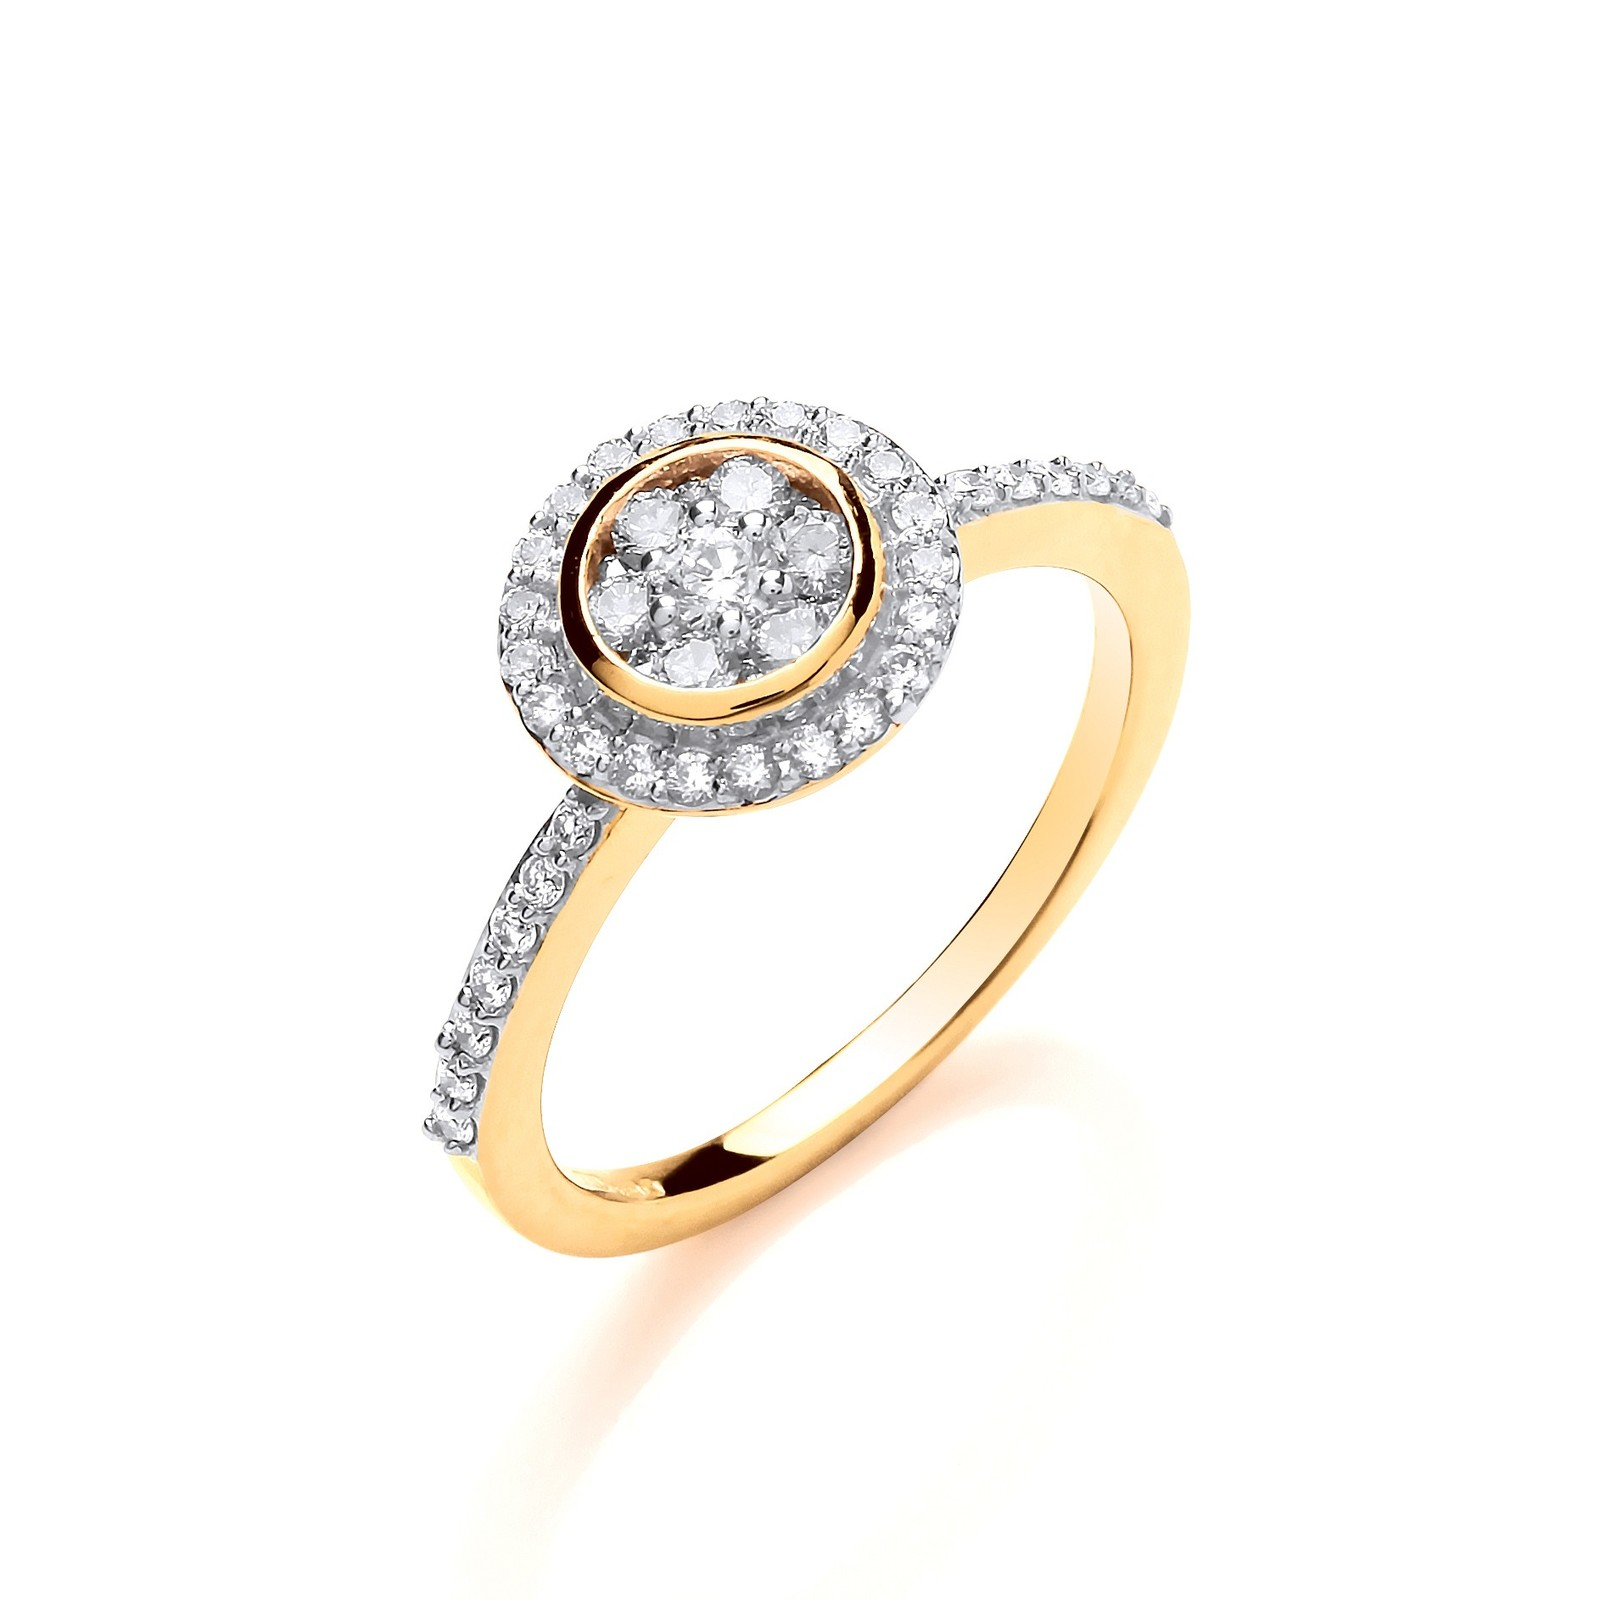 18ct YG 0.45ctw Round Top With Diamond Set Shoulders Ring